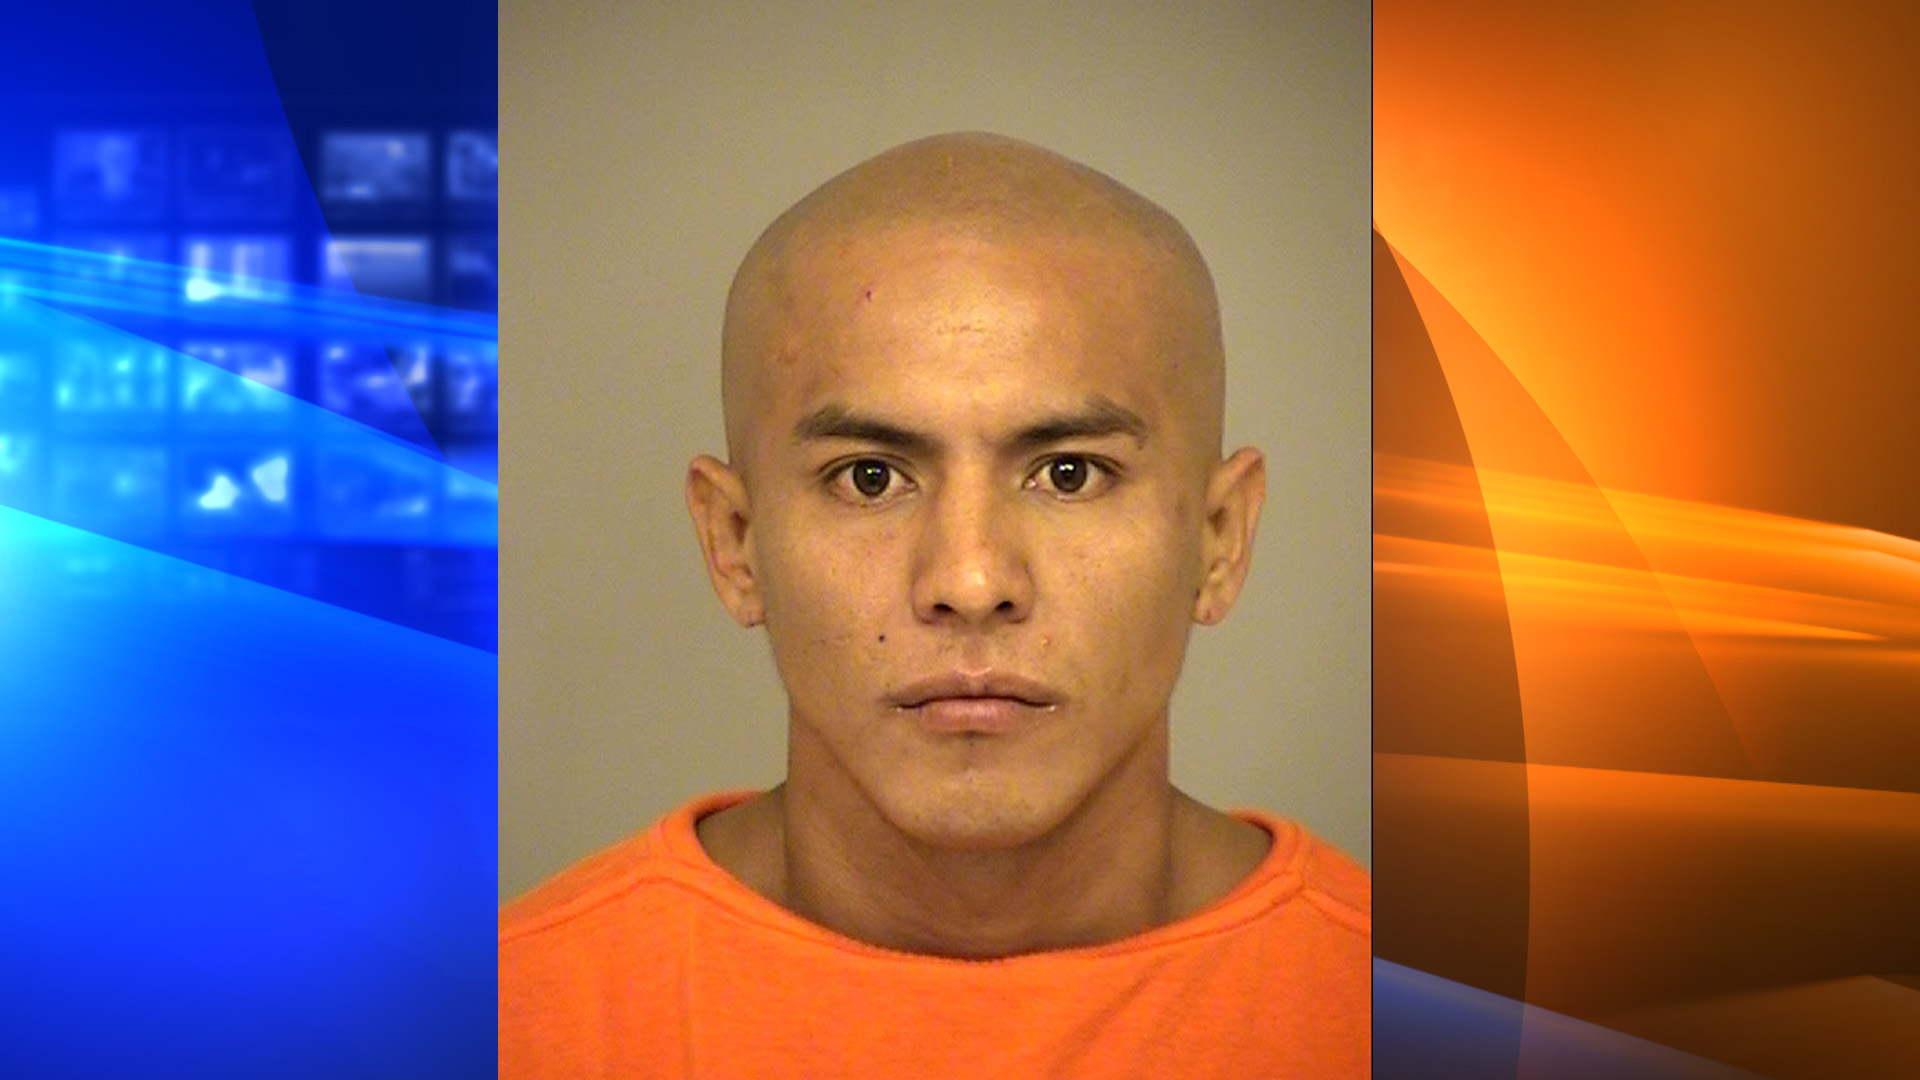 Antonio Alex Cardenas-Cespedes is seen in this booking photo from the Ventura County Sheriff's Office.